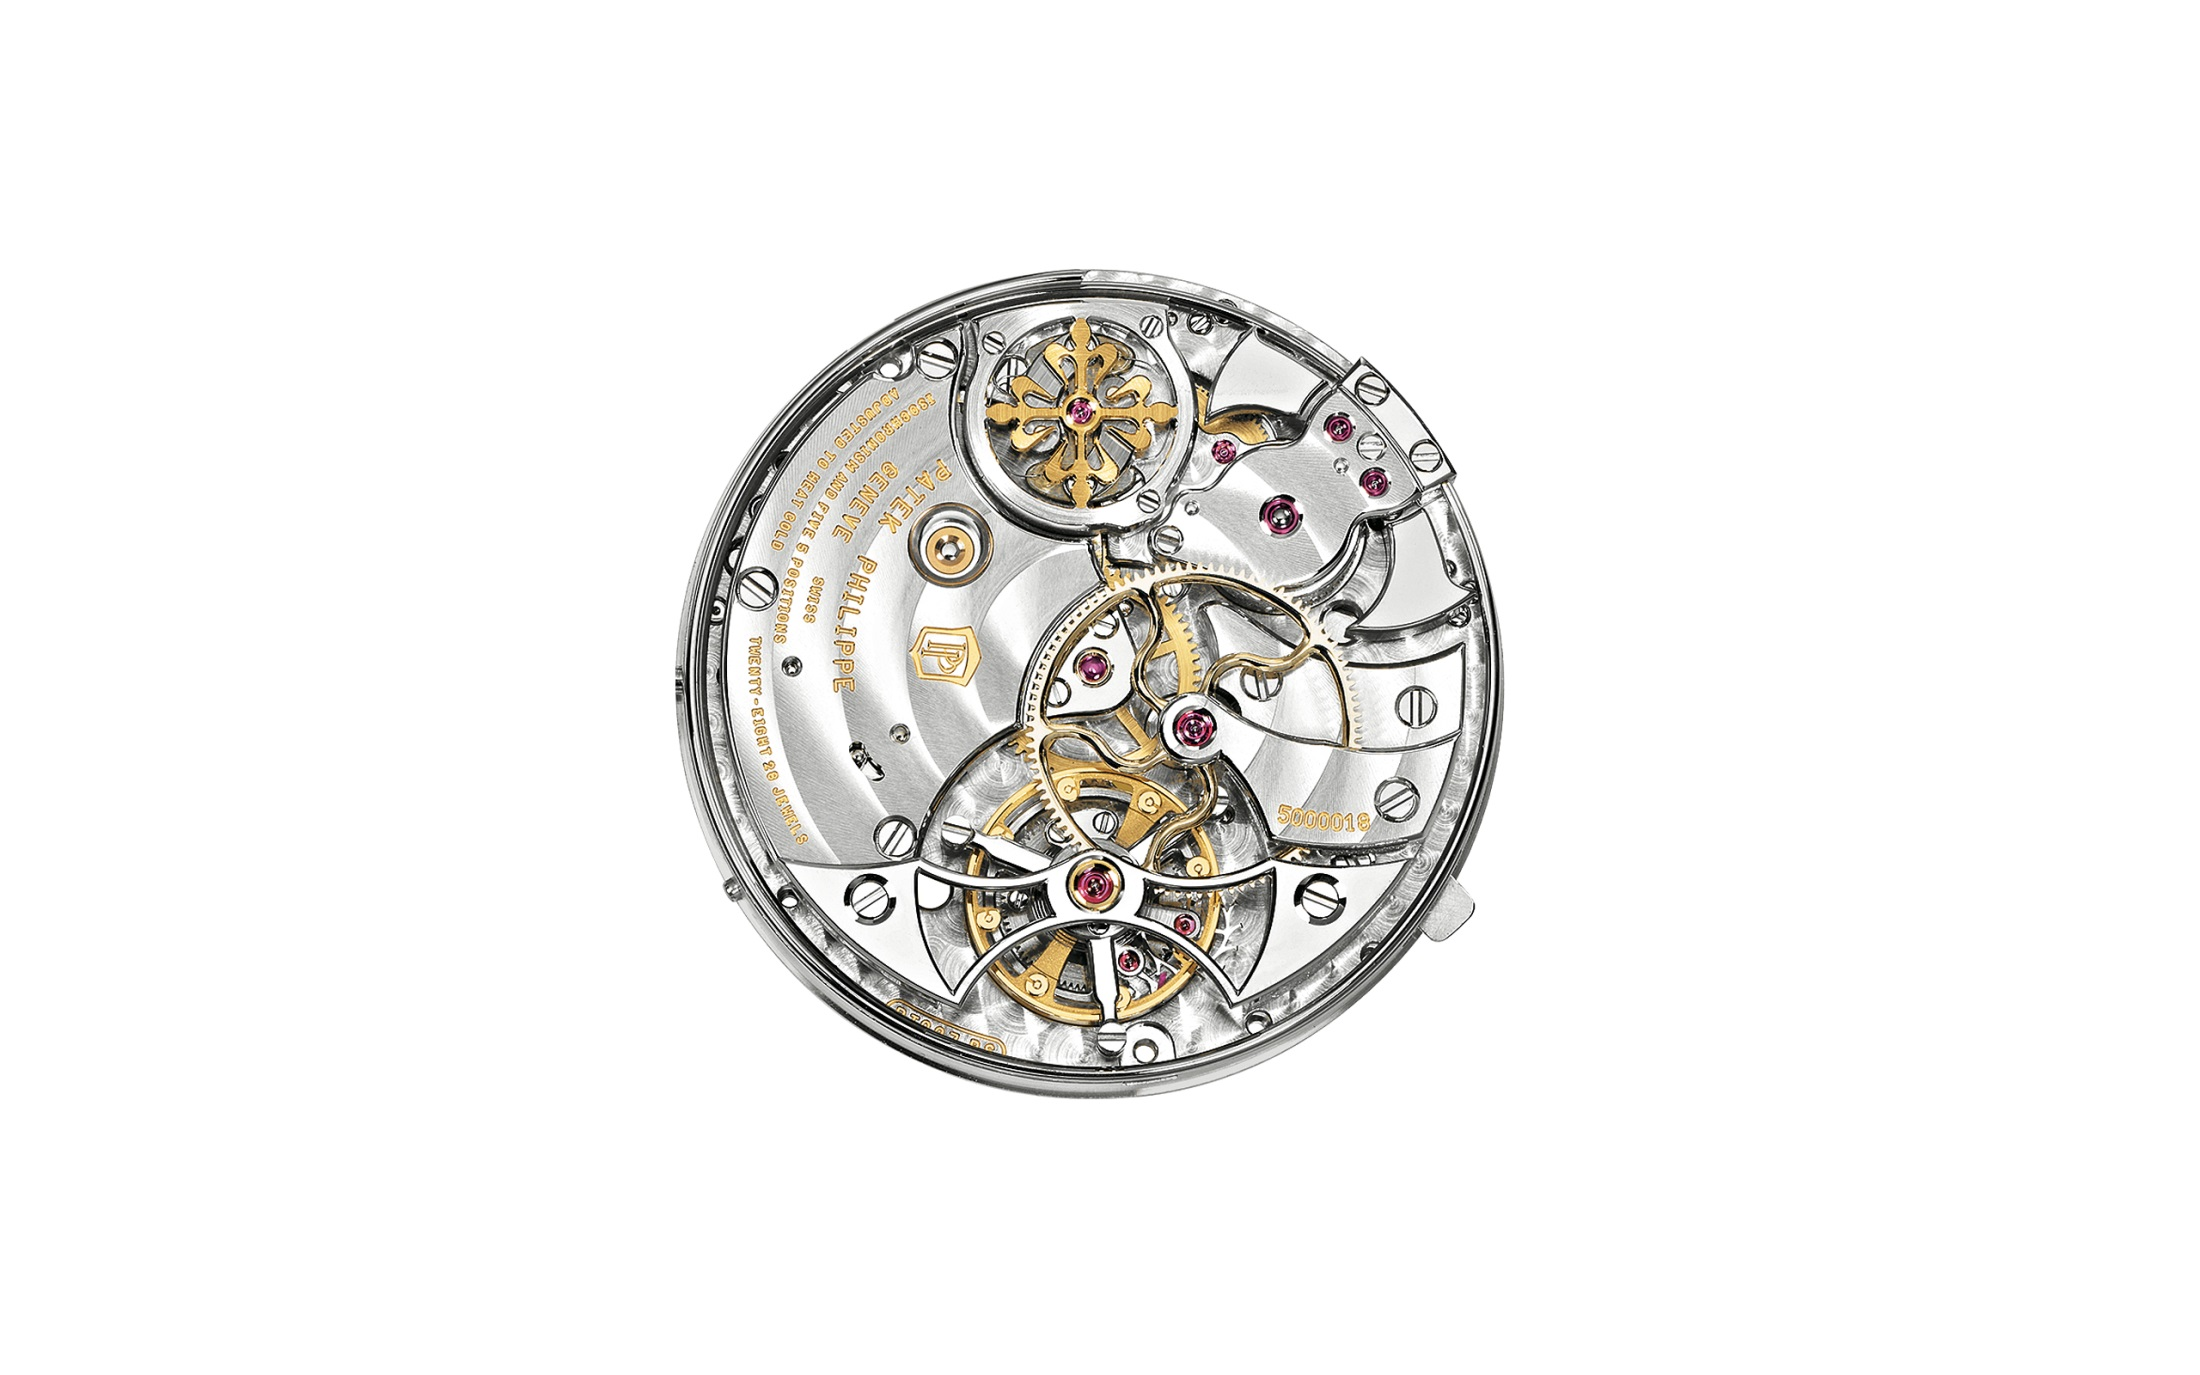 Watch Brands to Watch at BaselWorld 2019 - 5539G - GRAND COMPLICATIONS baselworld Watch Brands to Watch at BaselWorld 2019 5539G 014 7